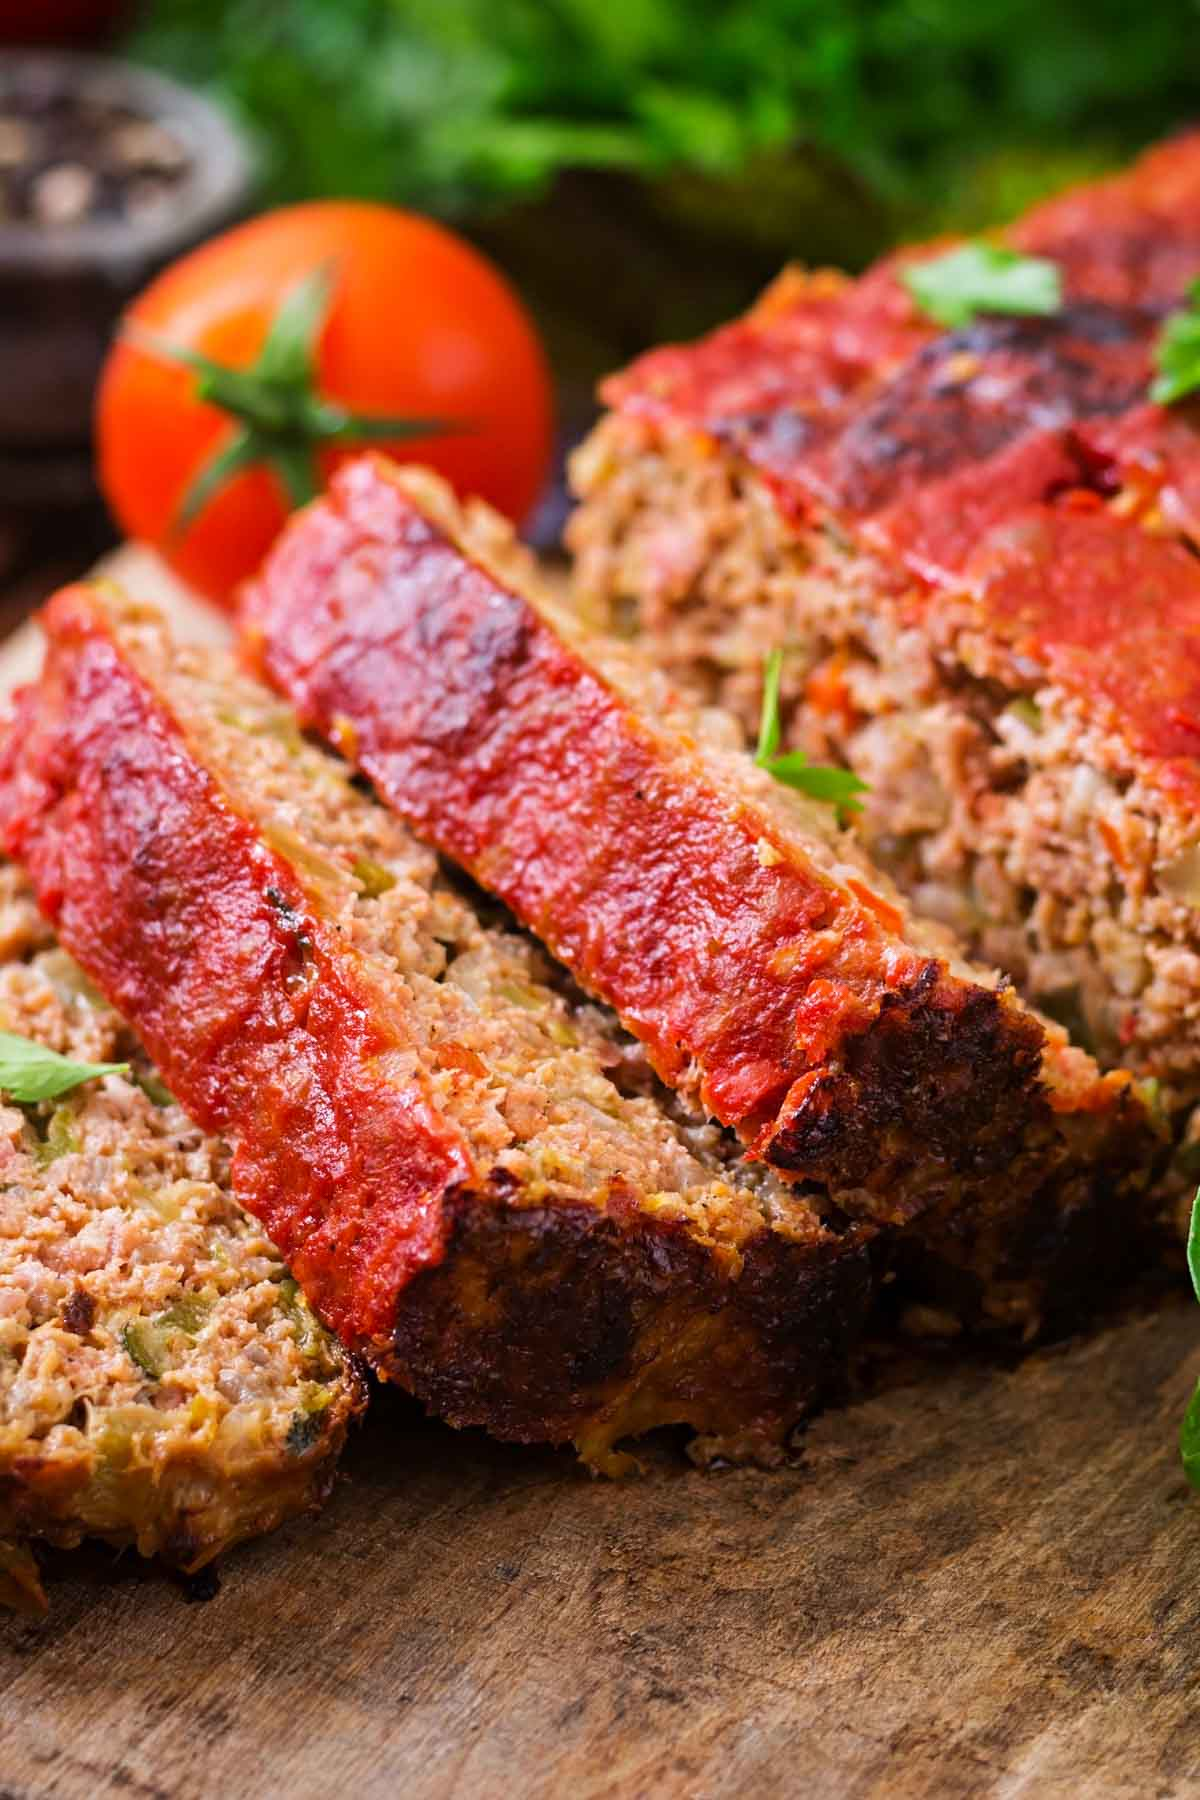 Lipton Onion Soup Meatloaf comes out so tender, juicy, and flavorful every single time! This copycat recipe is made with just 6 simple ingredients and minimal prep time. A packet of Lipton Onion Soup Mix is the key to a well-seasoned loaf that's full of flavor.